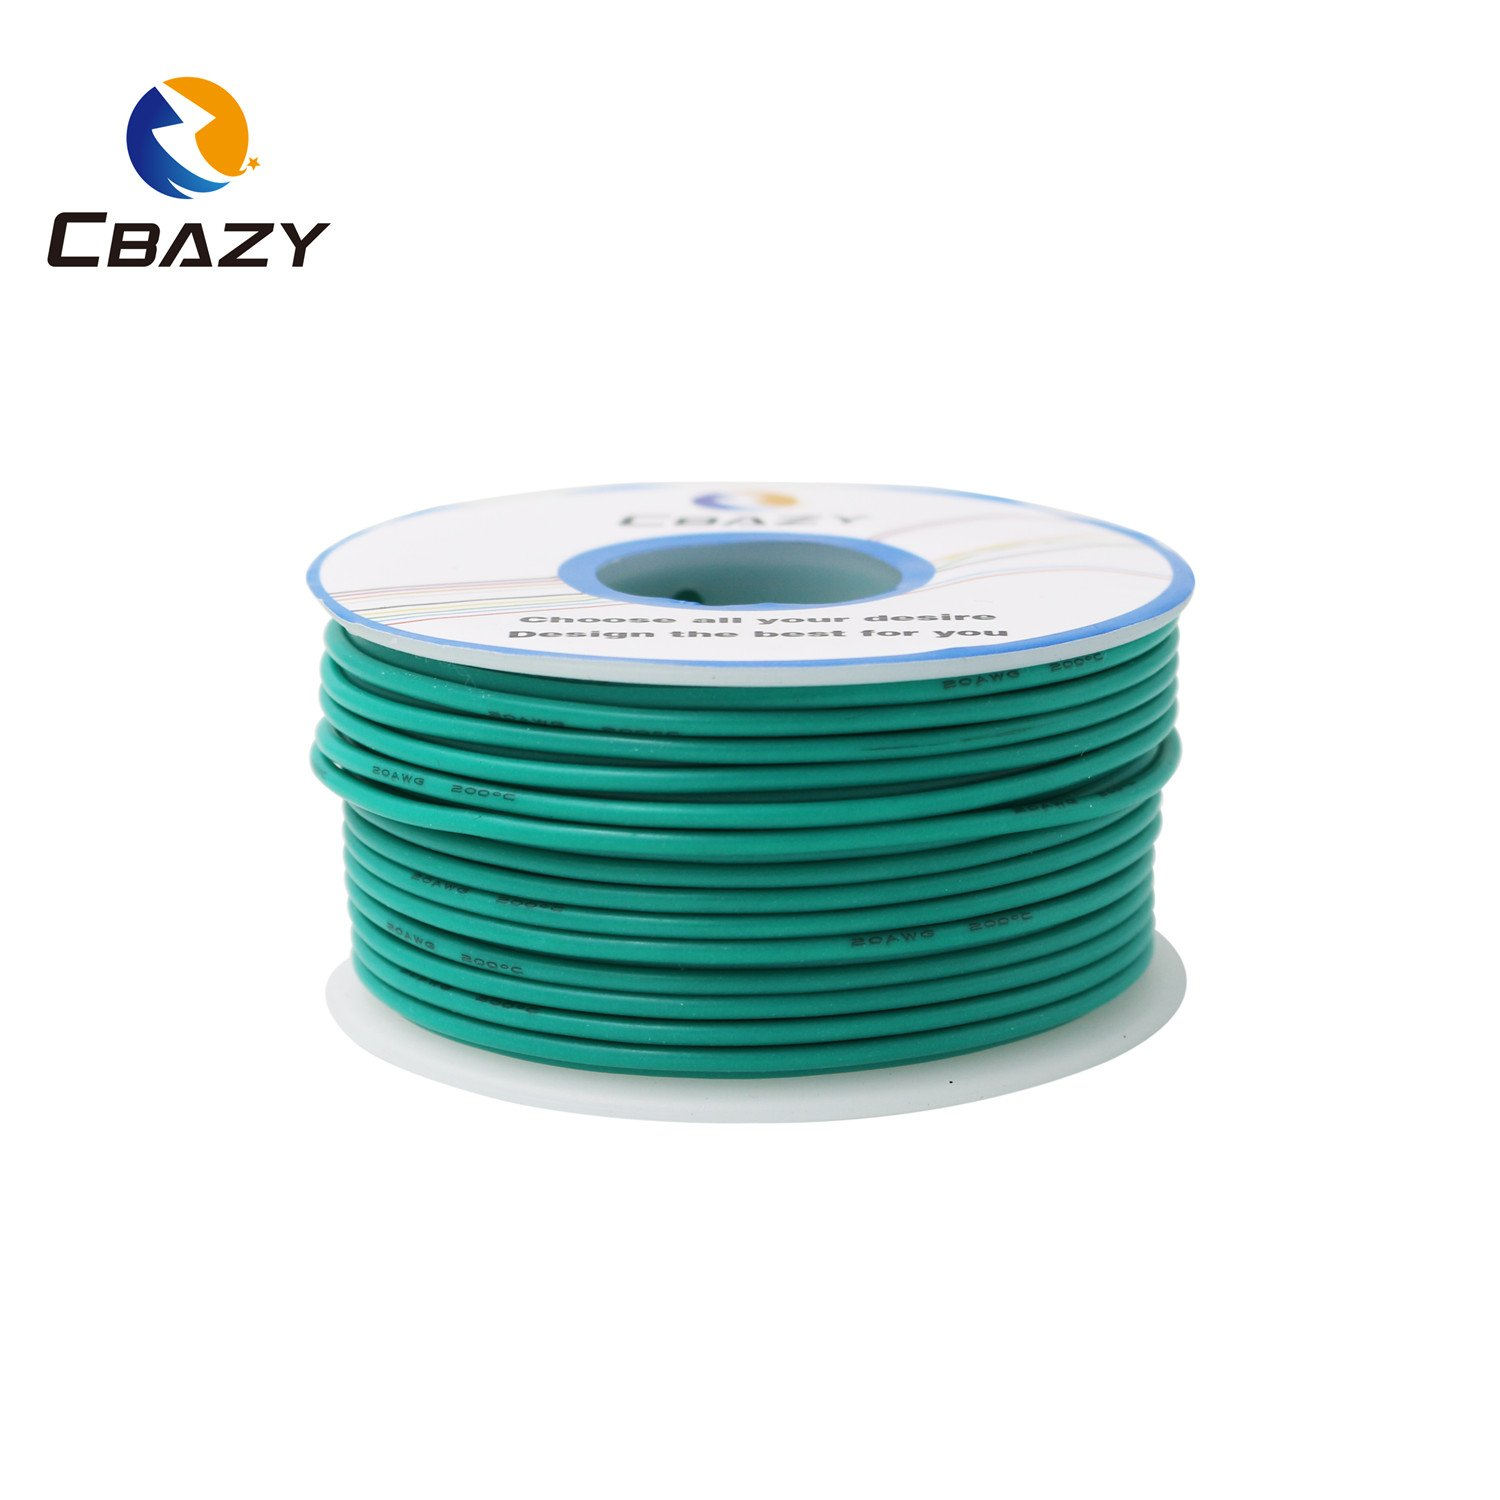 CBAZY™ Hook up Wire (Stranded Wire) 22 Gauge Flexible Silicone Wire 22AWG 25M (82 Feet) Electrical Wire Green by CBAZY (Image #2)